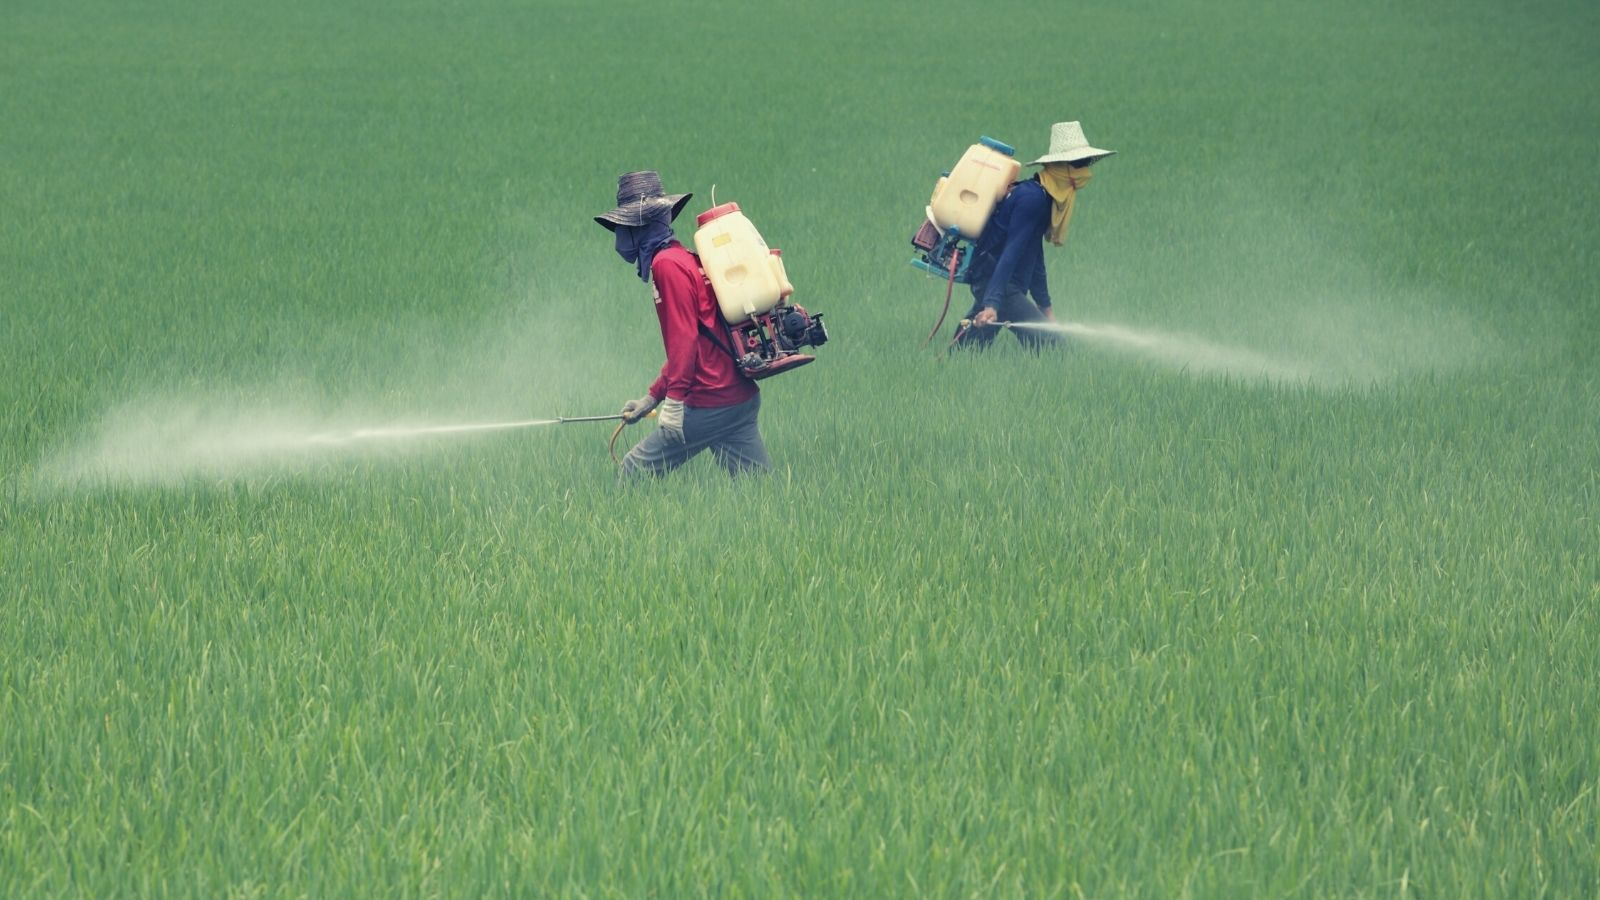 44% of farmers poisoned by pesticides each year globally